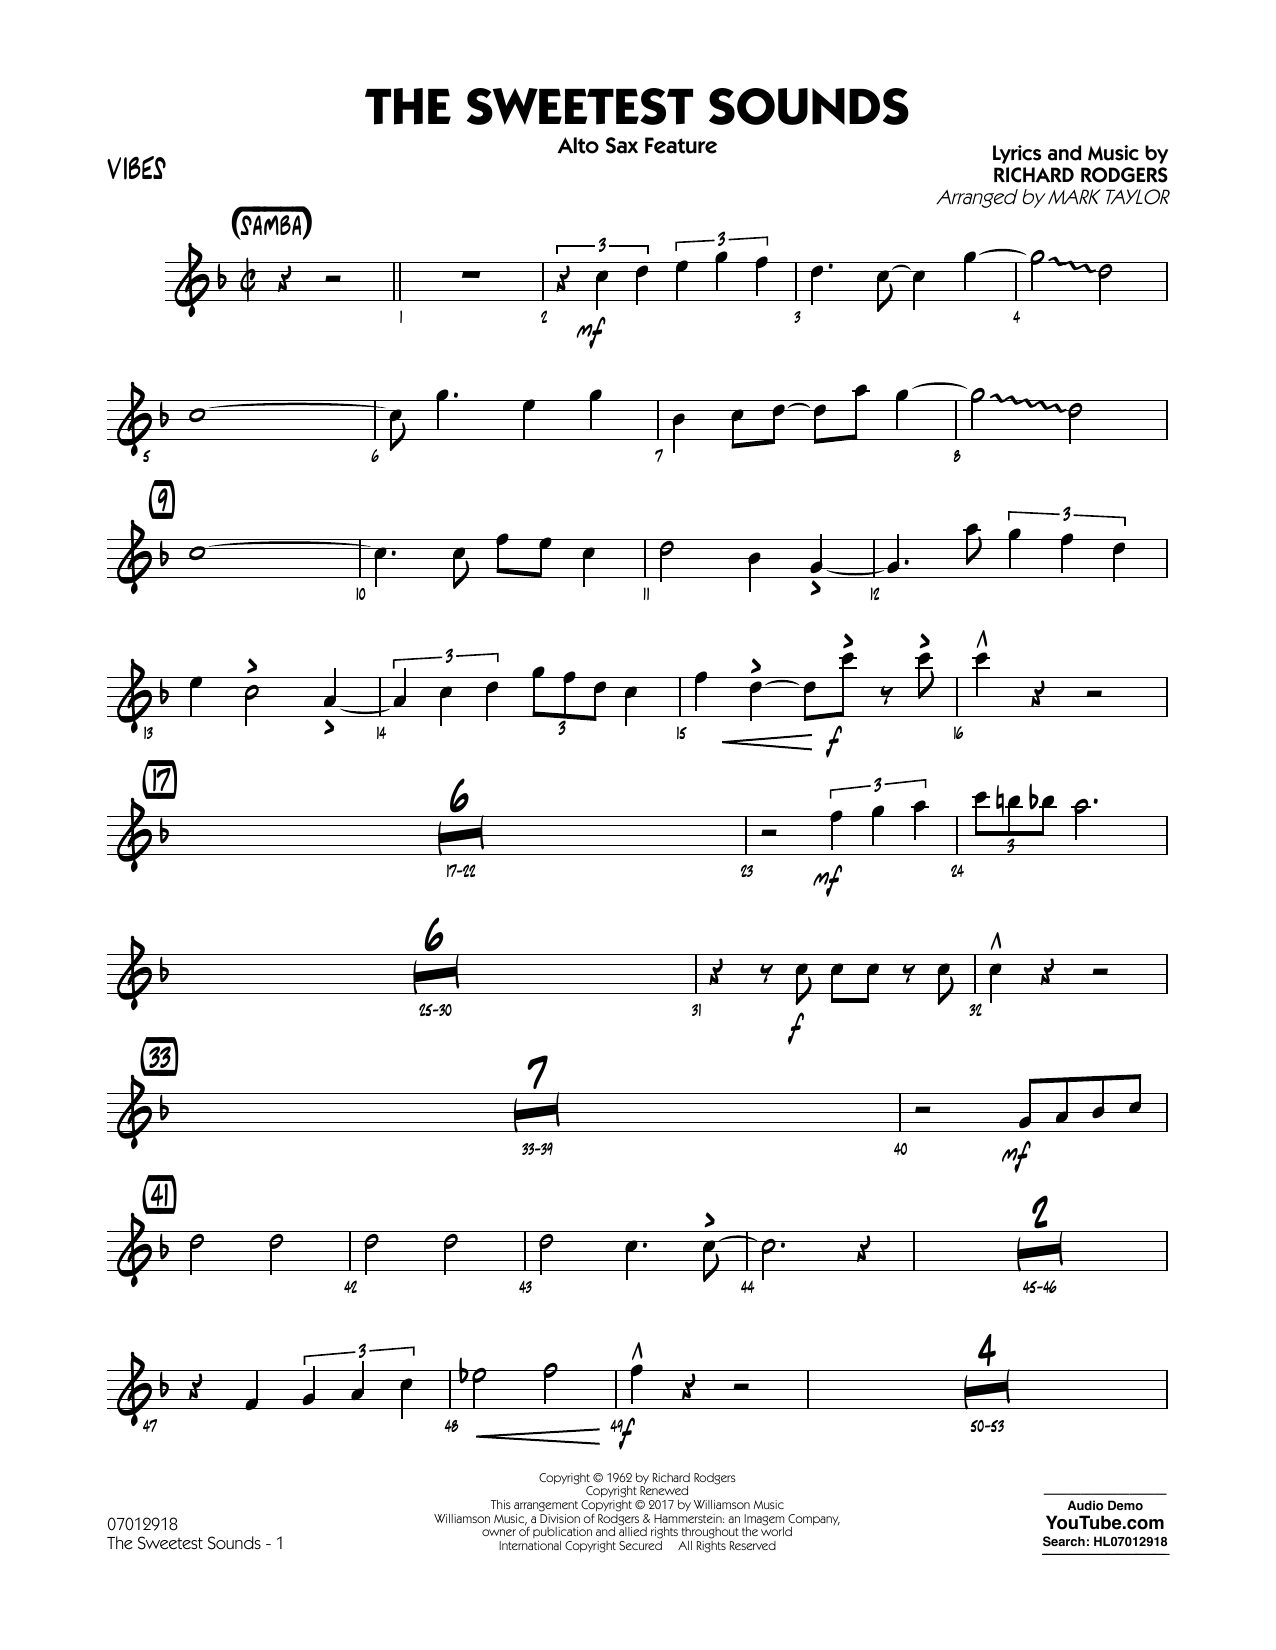 The Sweetest Sounds (Alto Sax Feature) - Vibes Sheet Music